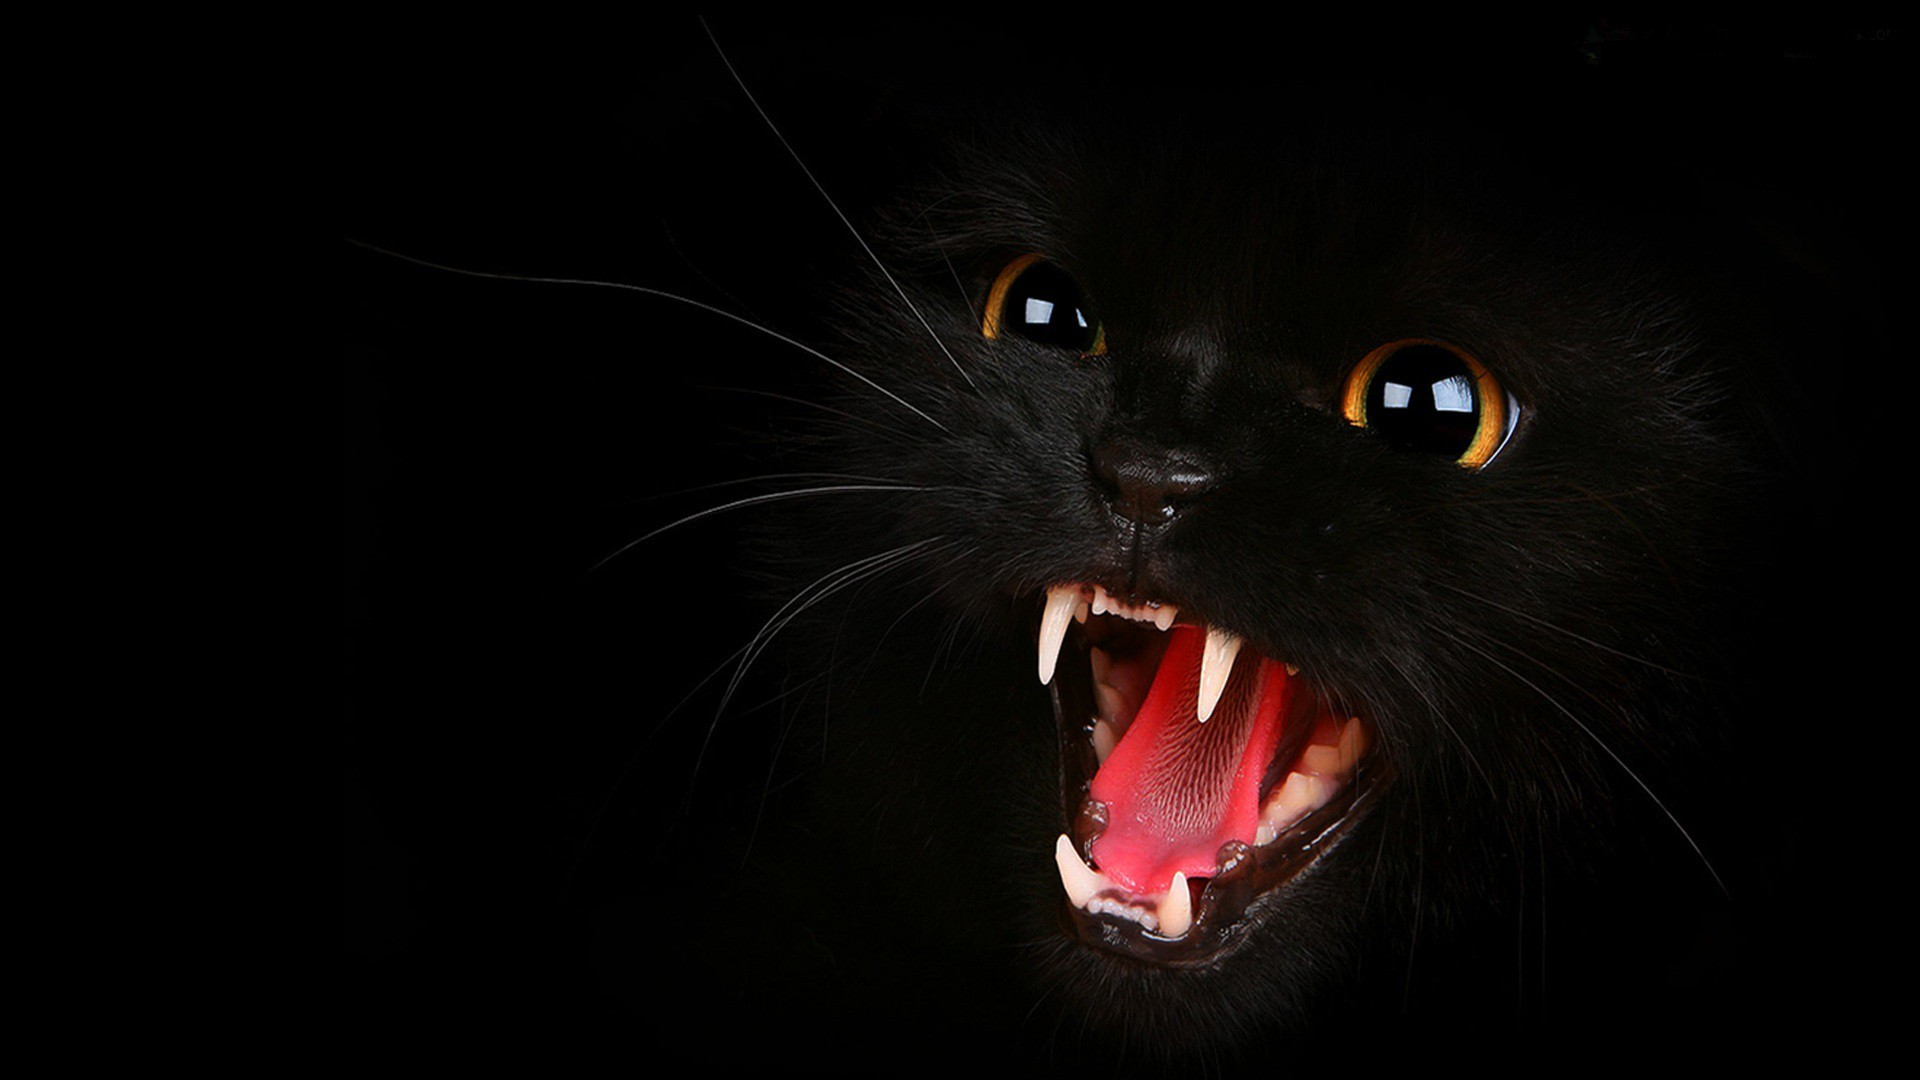 cat wallpaper for desktop ·①